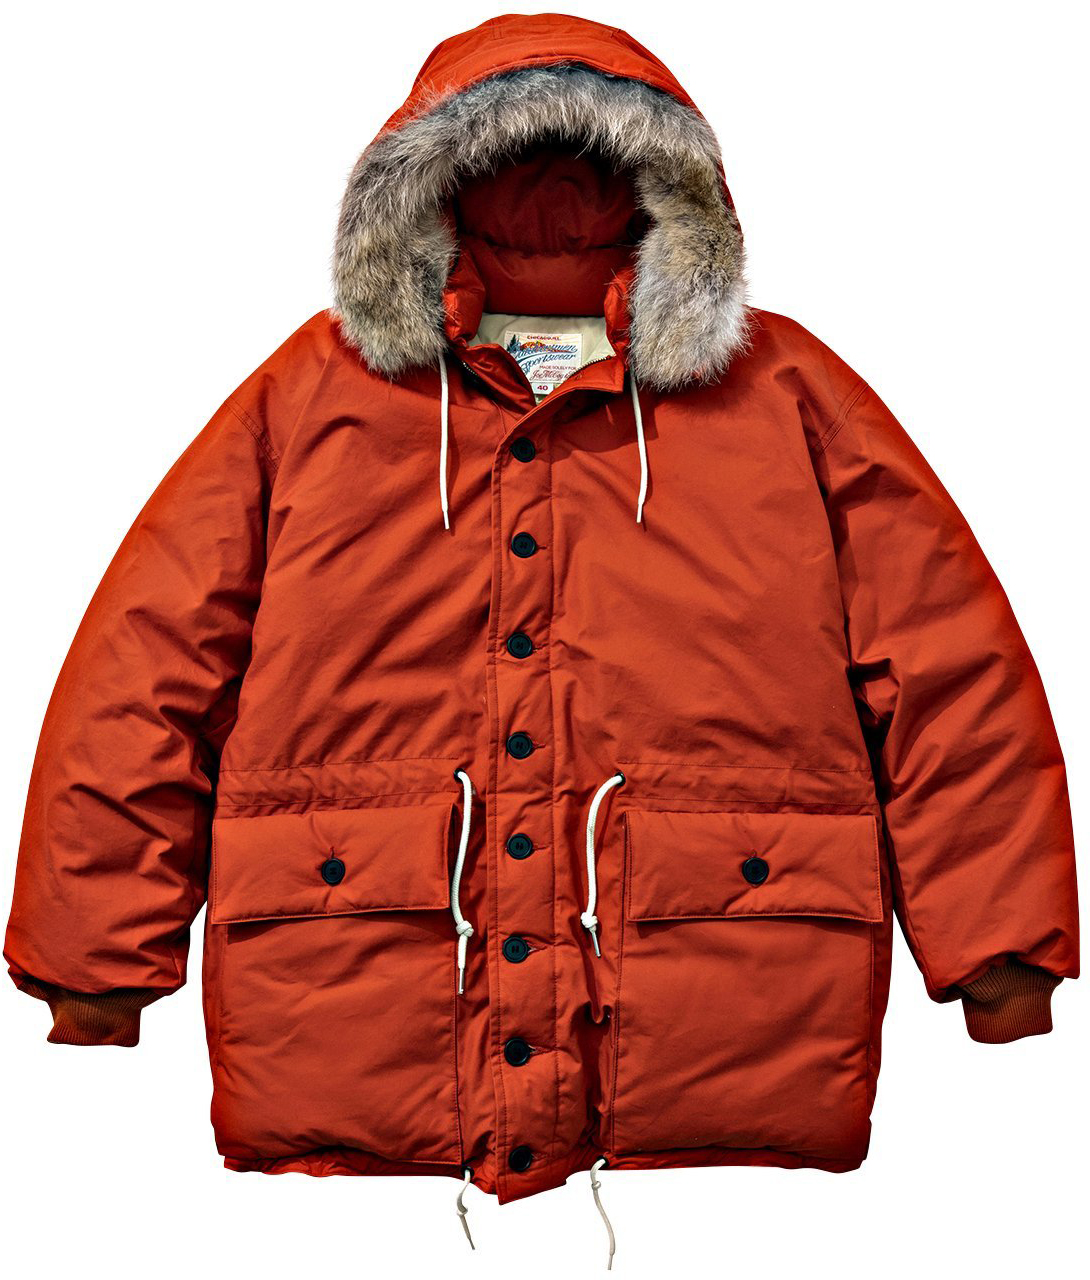 ARCTIC OUTDOOR EXPLORER DOWN JACKET by The Real McCoy's